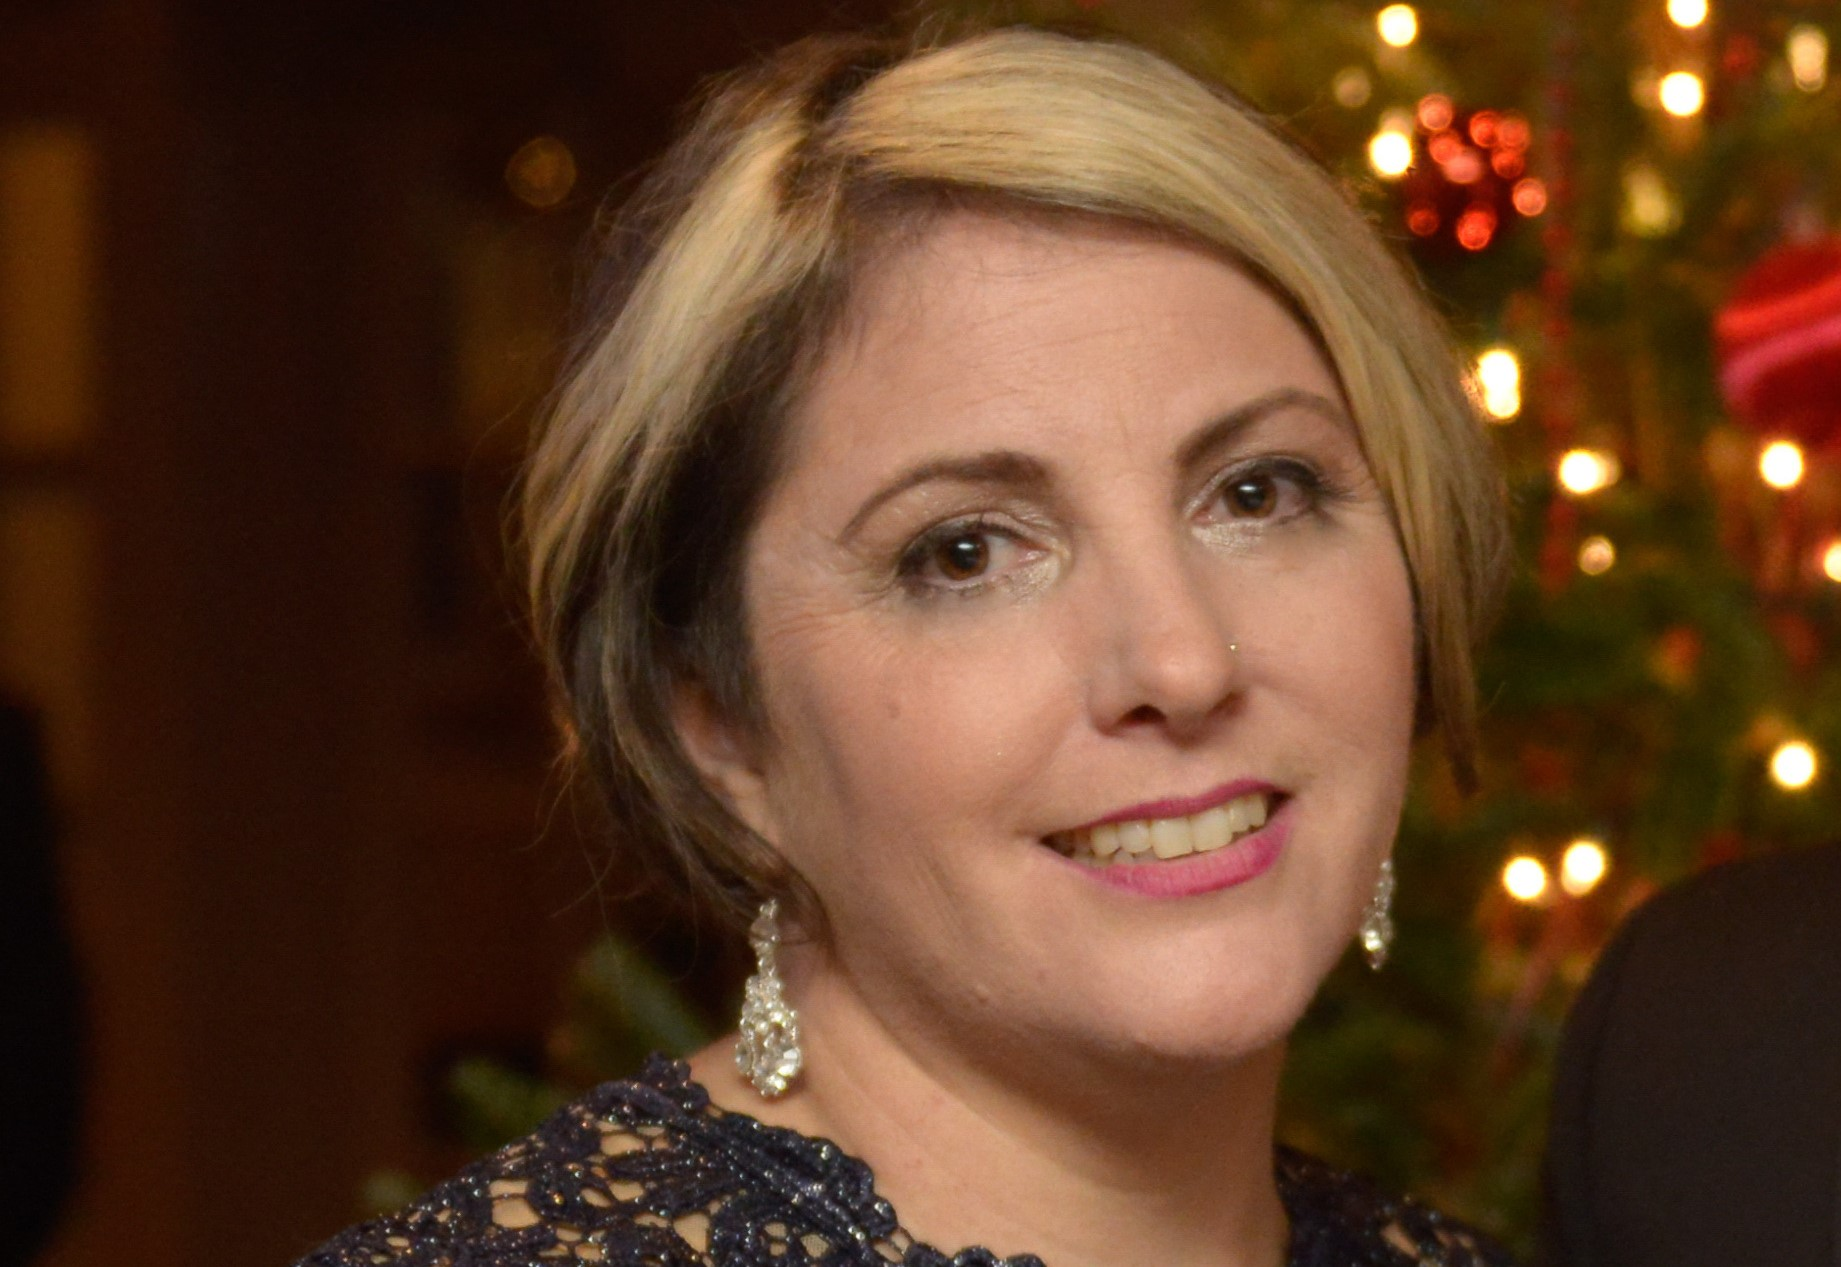 Uptown! Welcomes Familiar Face from West Chester's Nonprofit Scene as New Executive Director